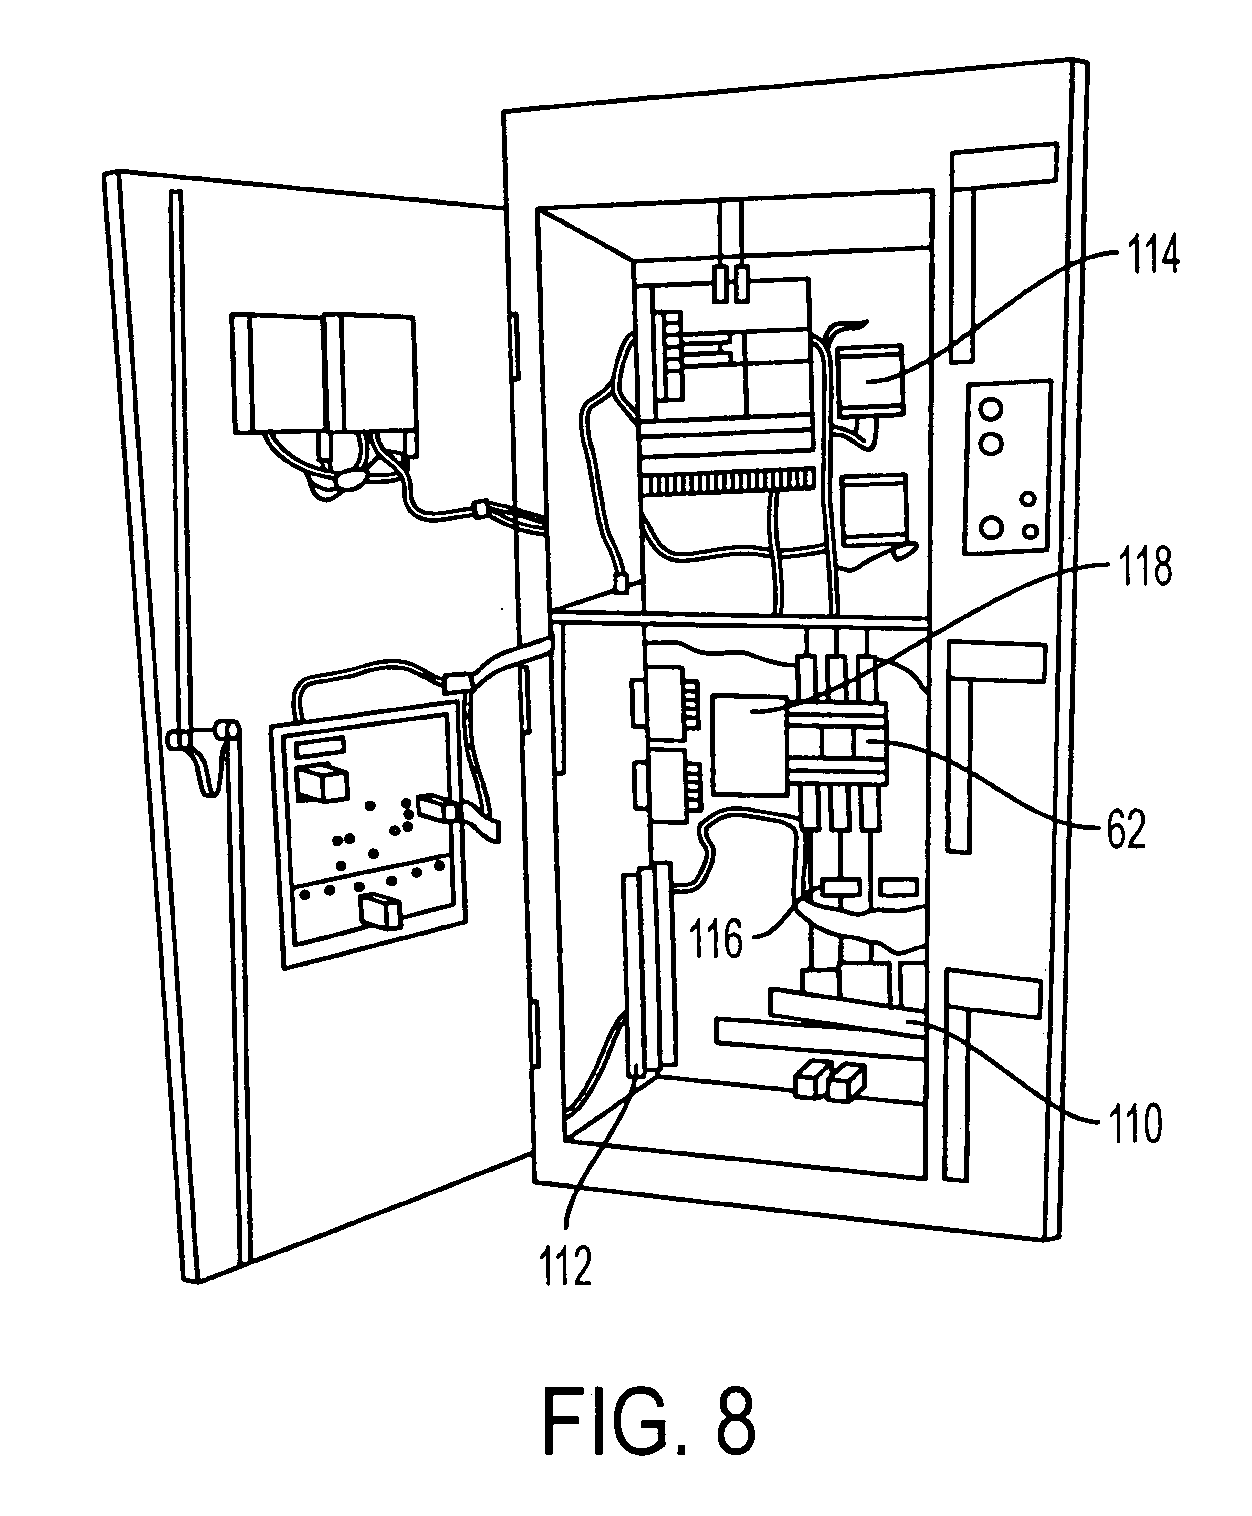 claims 21 1 a fire pump control assembly comprising a metal fire